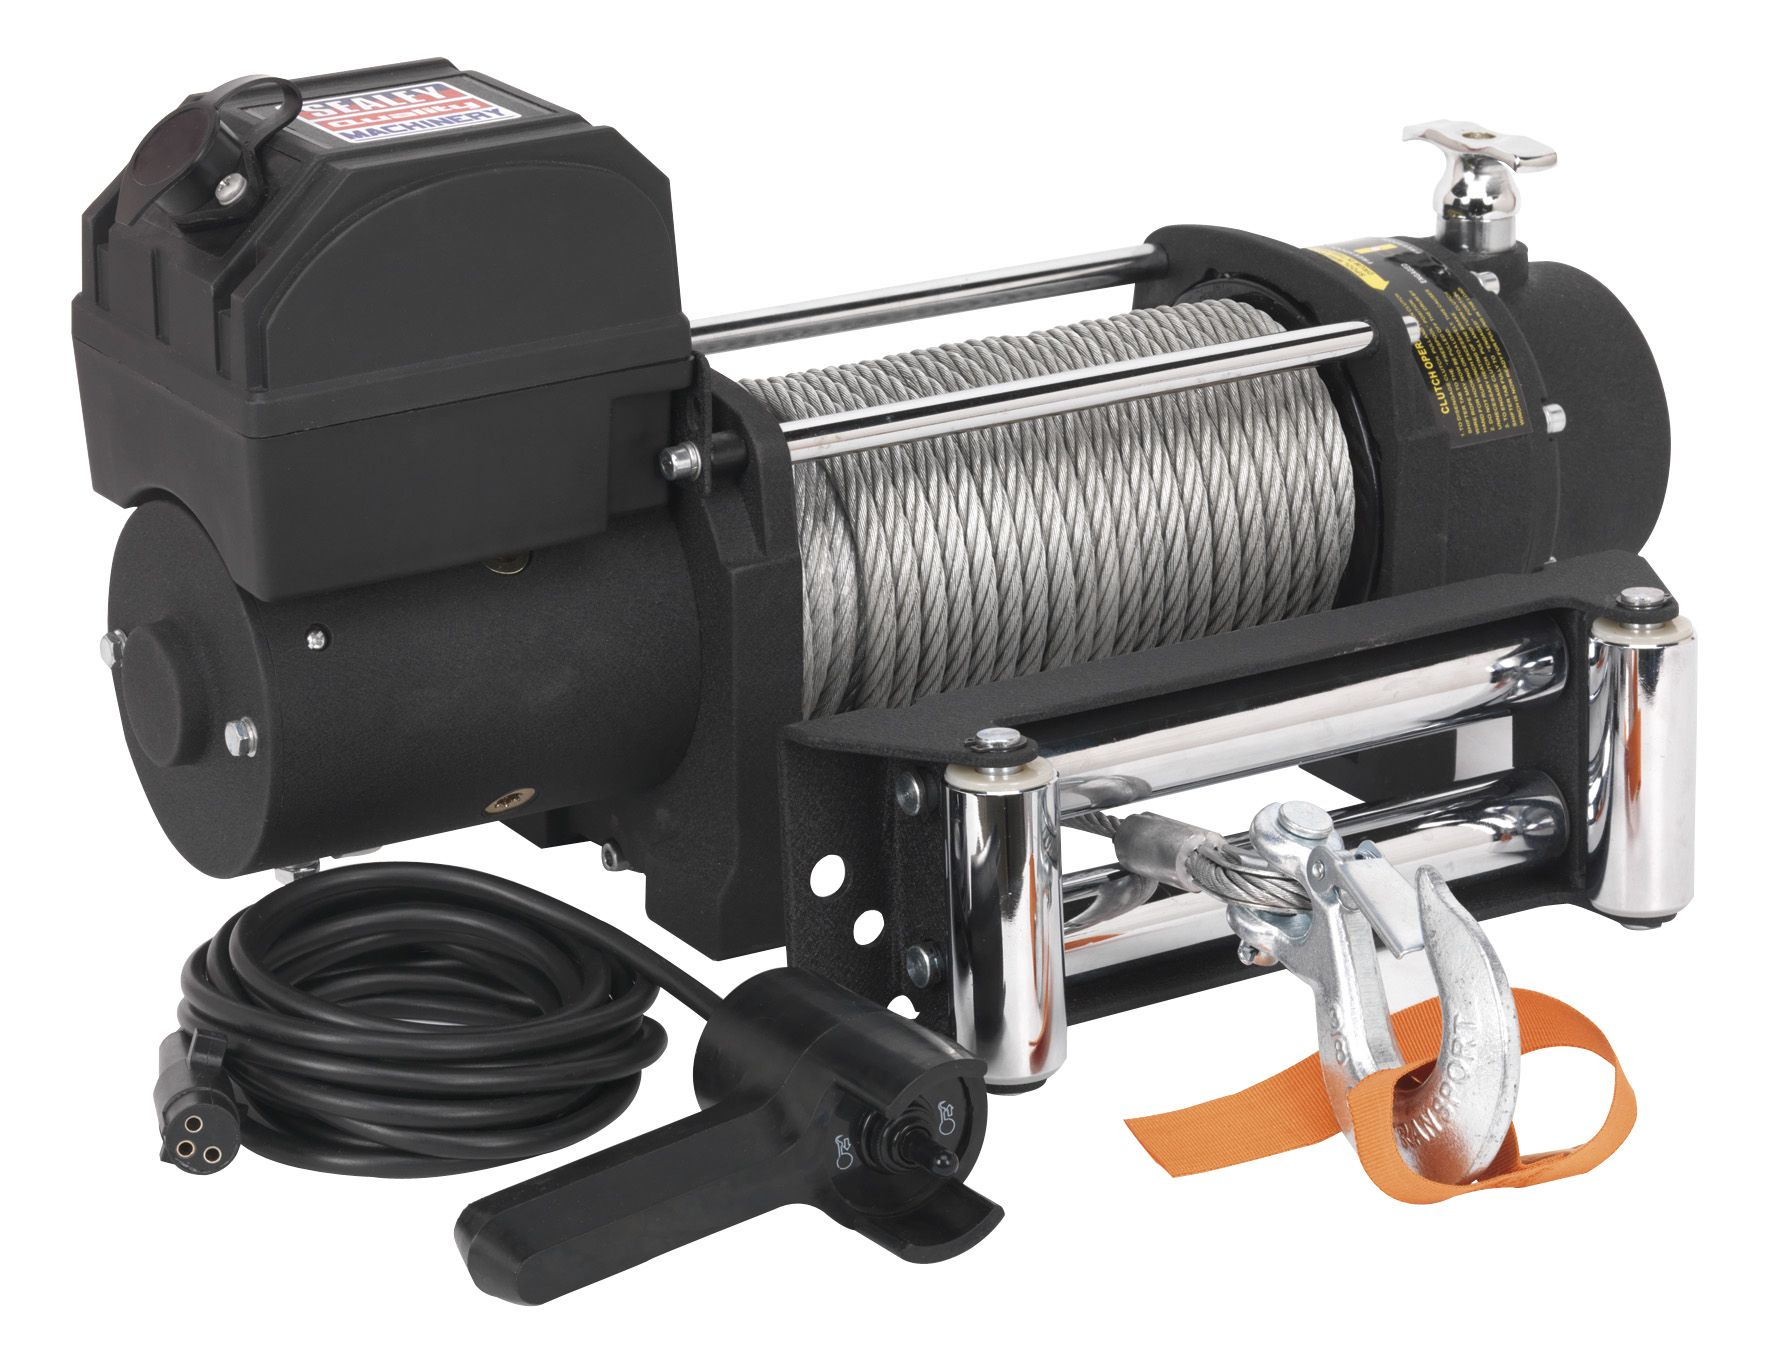 Sealey Self Recovery Winch 4300kg (9500lb) Line Pull 12V